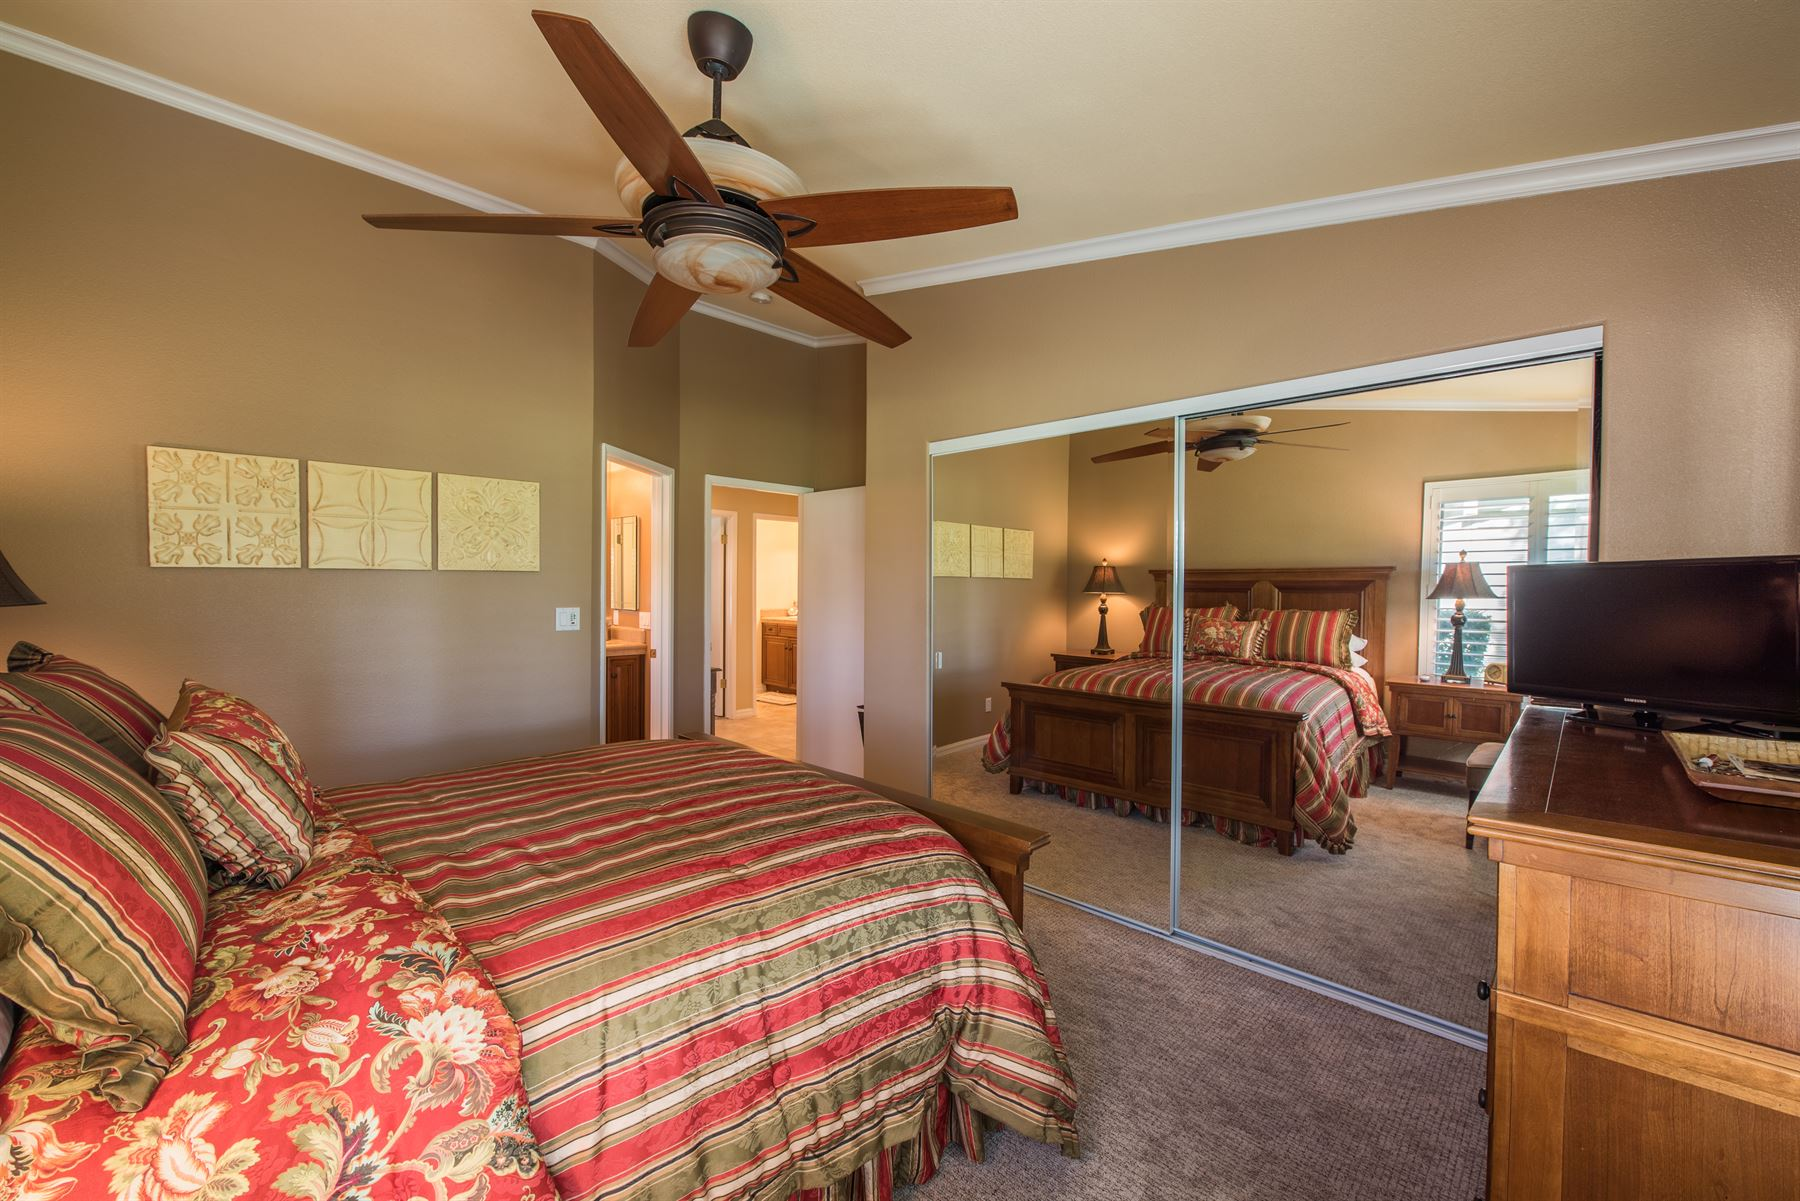 Golfer's Getaway - Interior - Bedroom with sliding mirror and ceiling fan